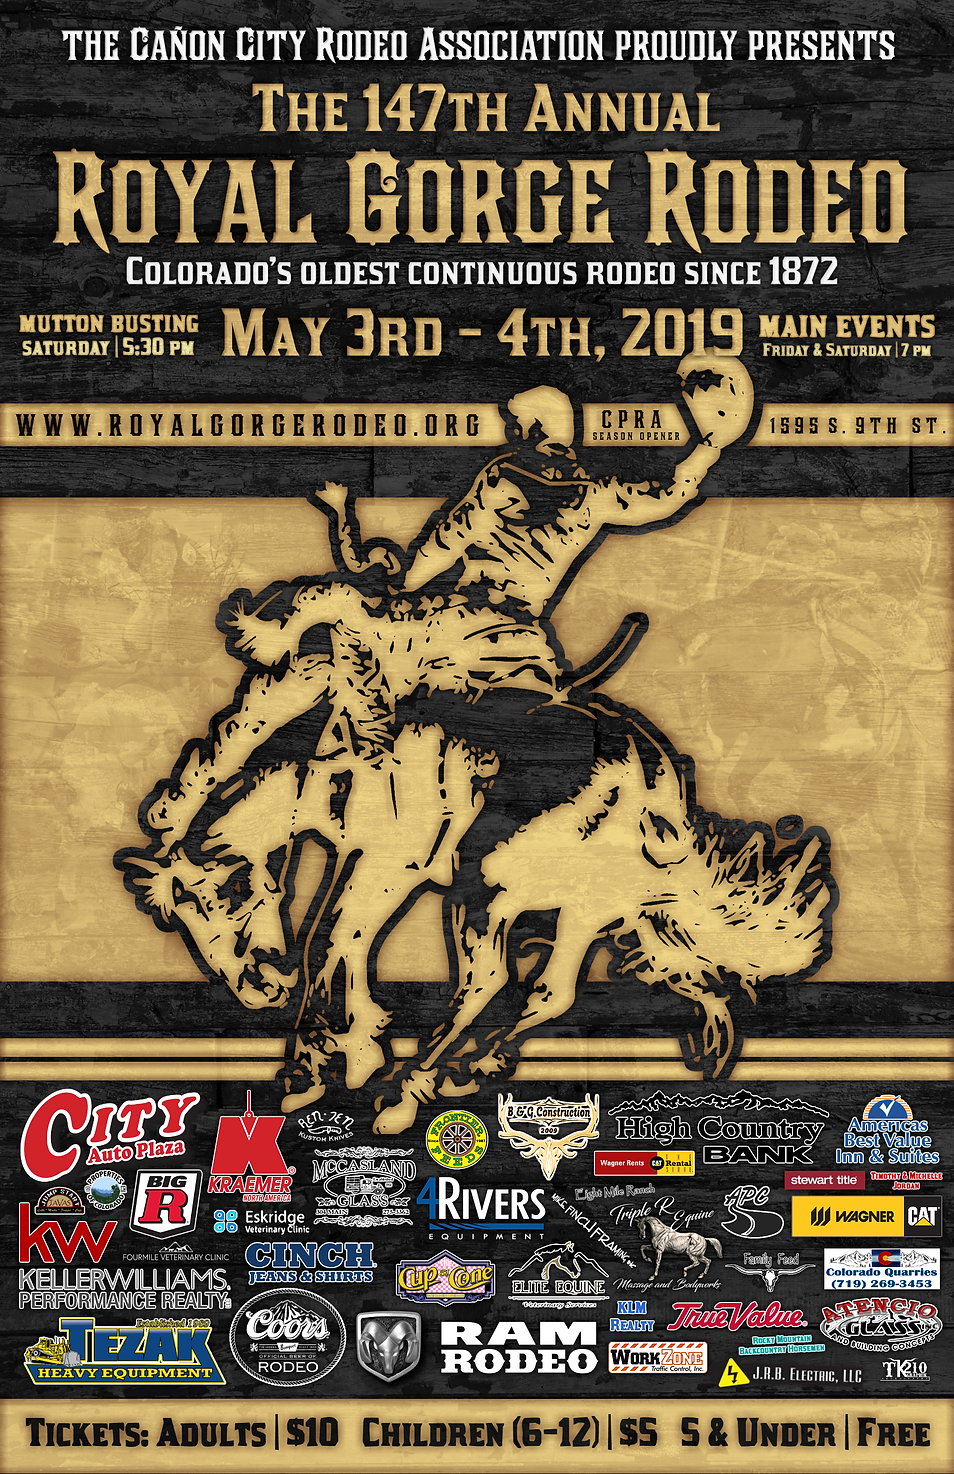 The 147th Annual Royal Gorge Rodeo